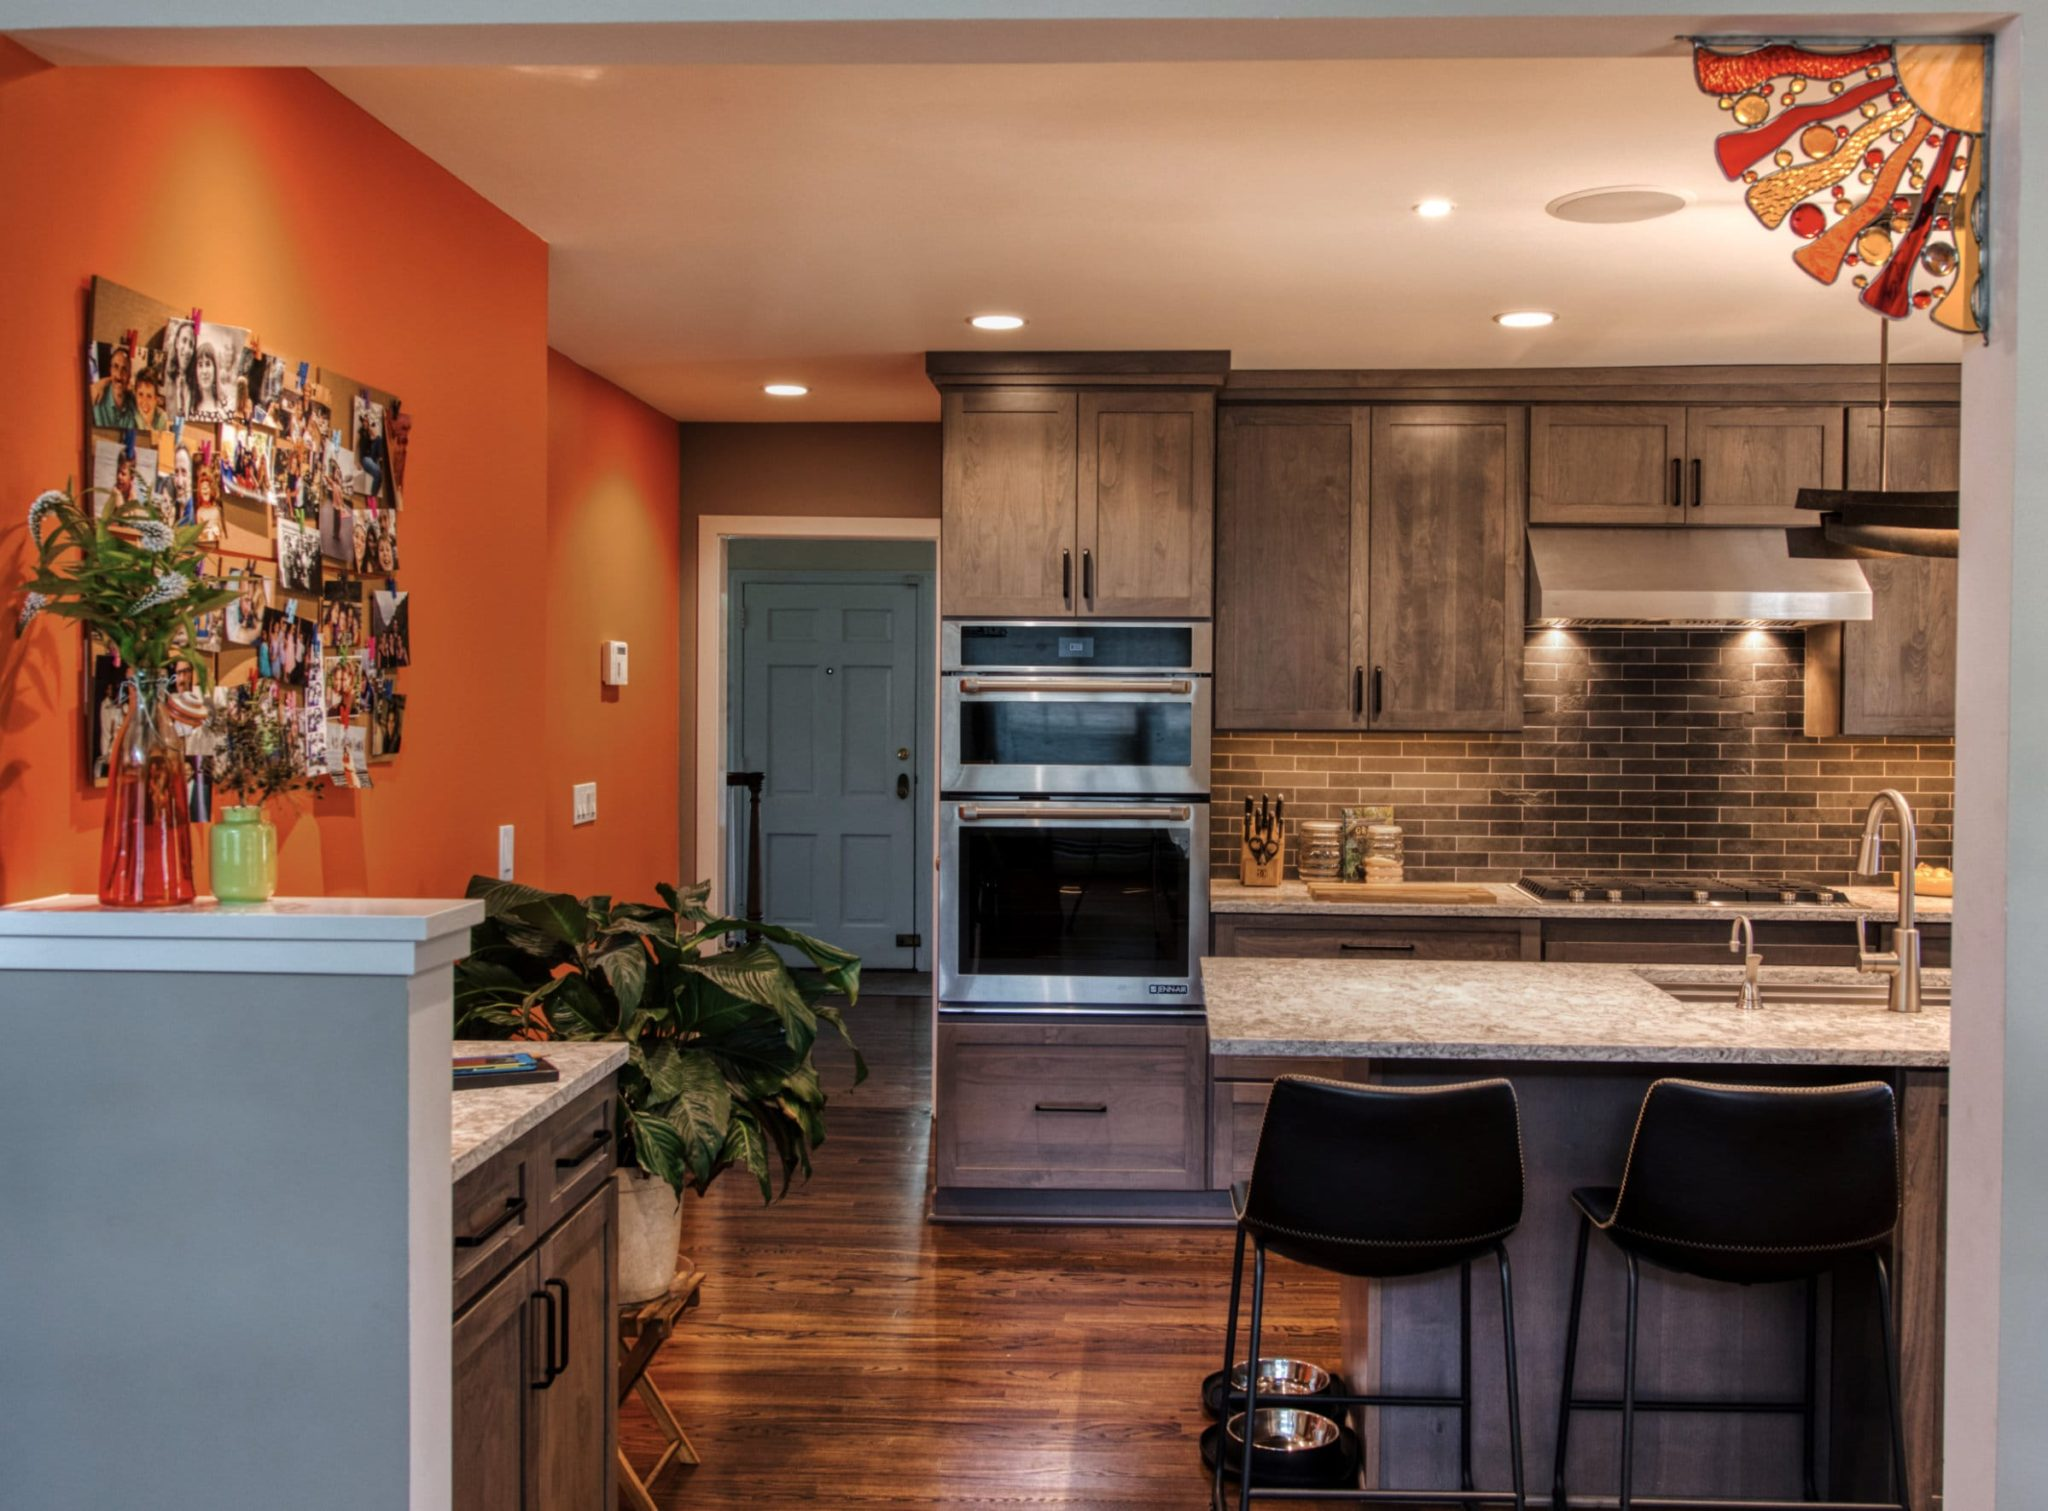 Strong and calm colors working together lend extra personality to this kitchen